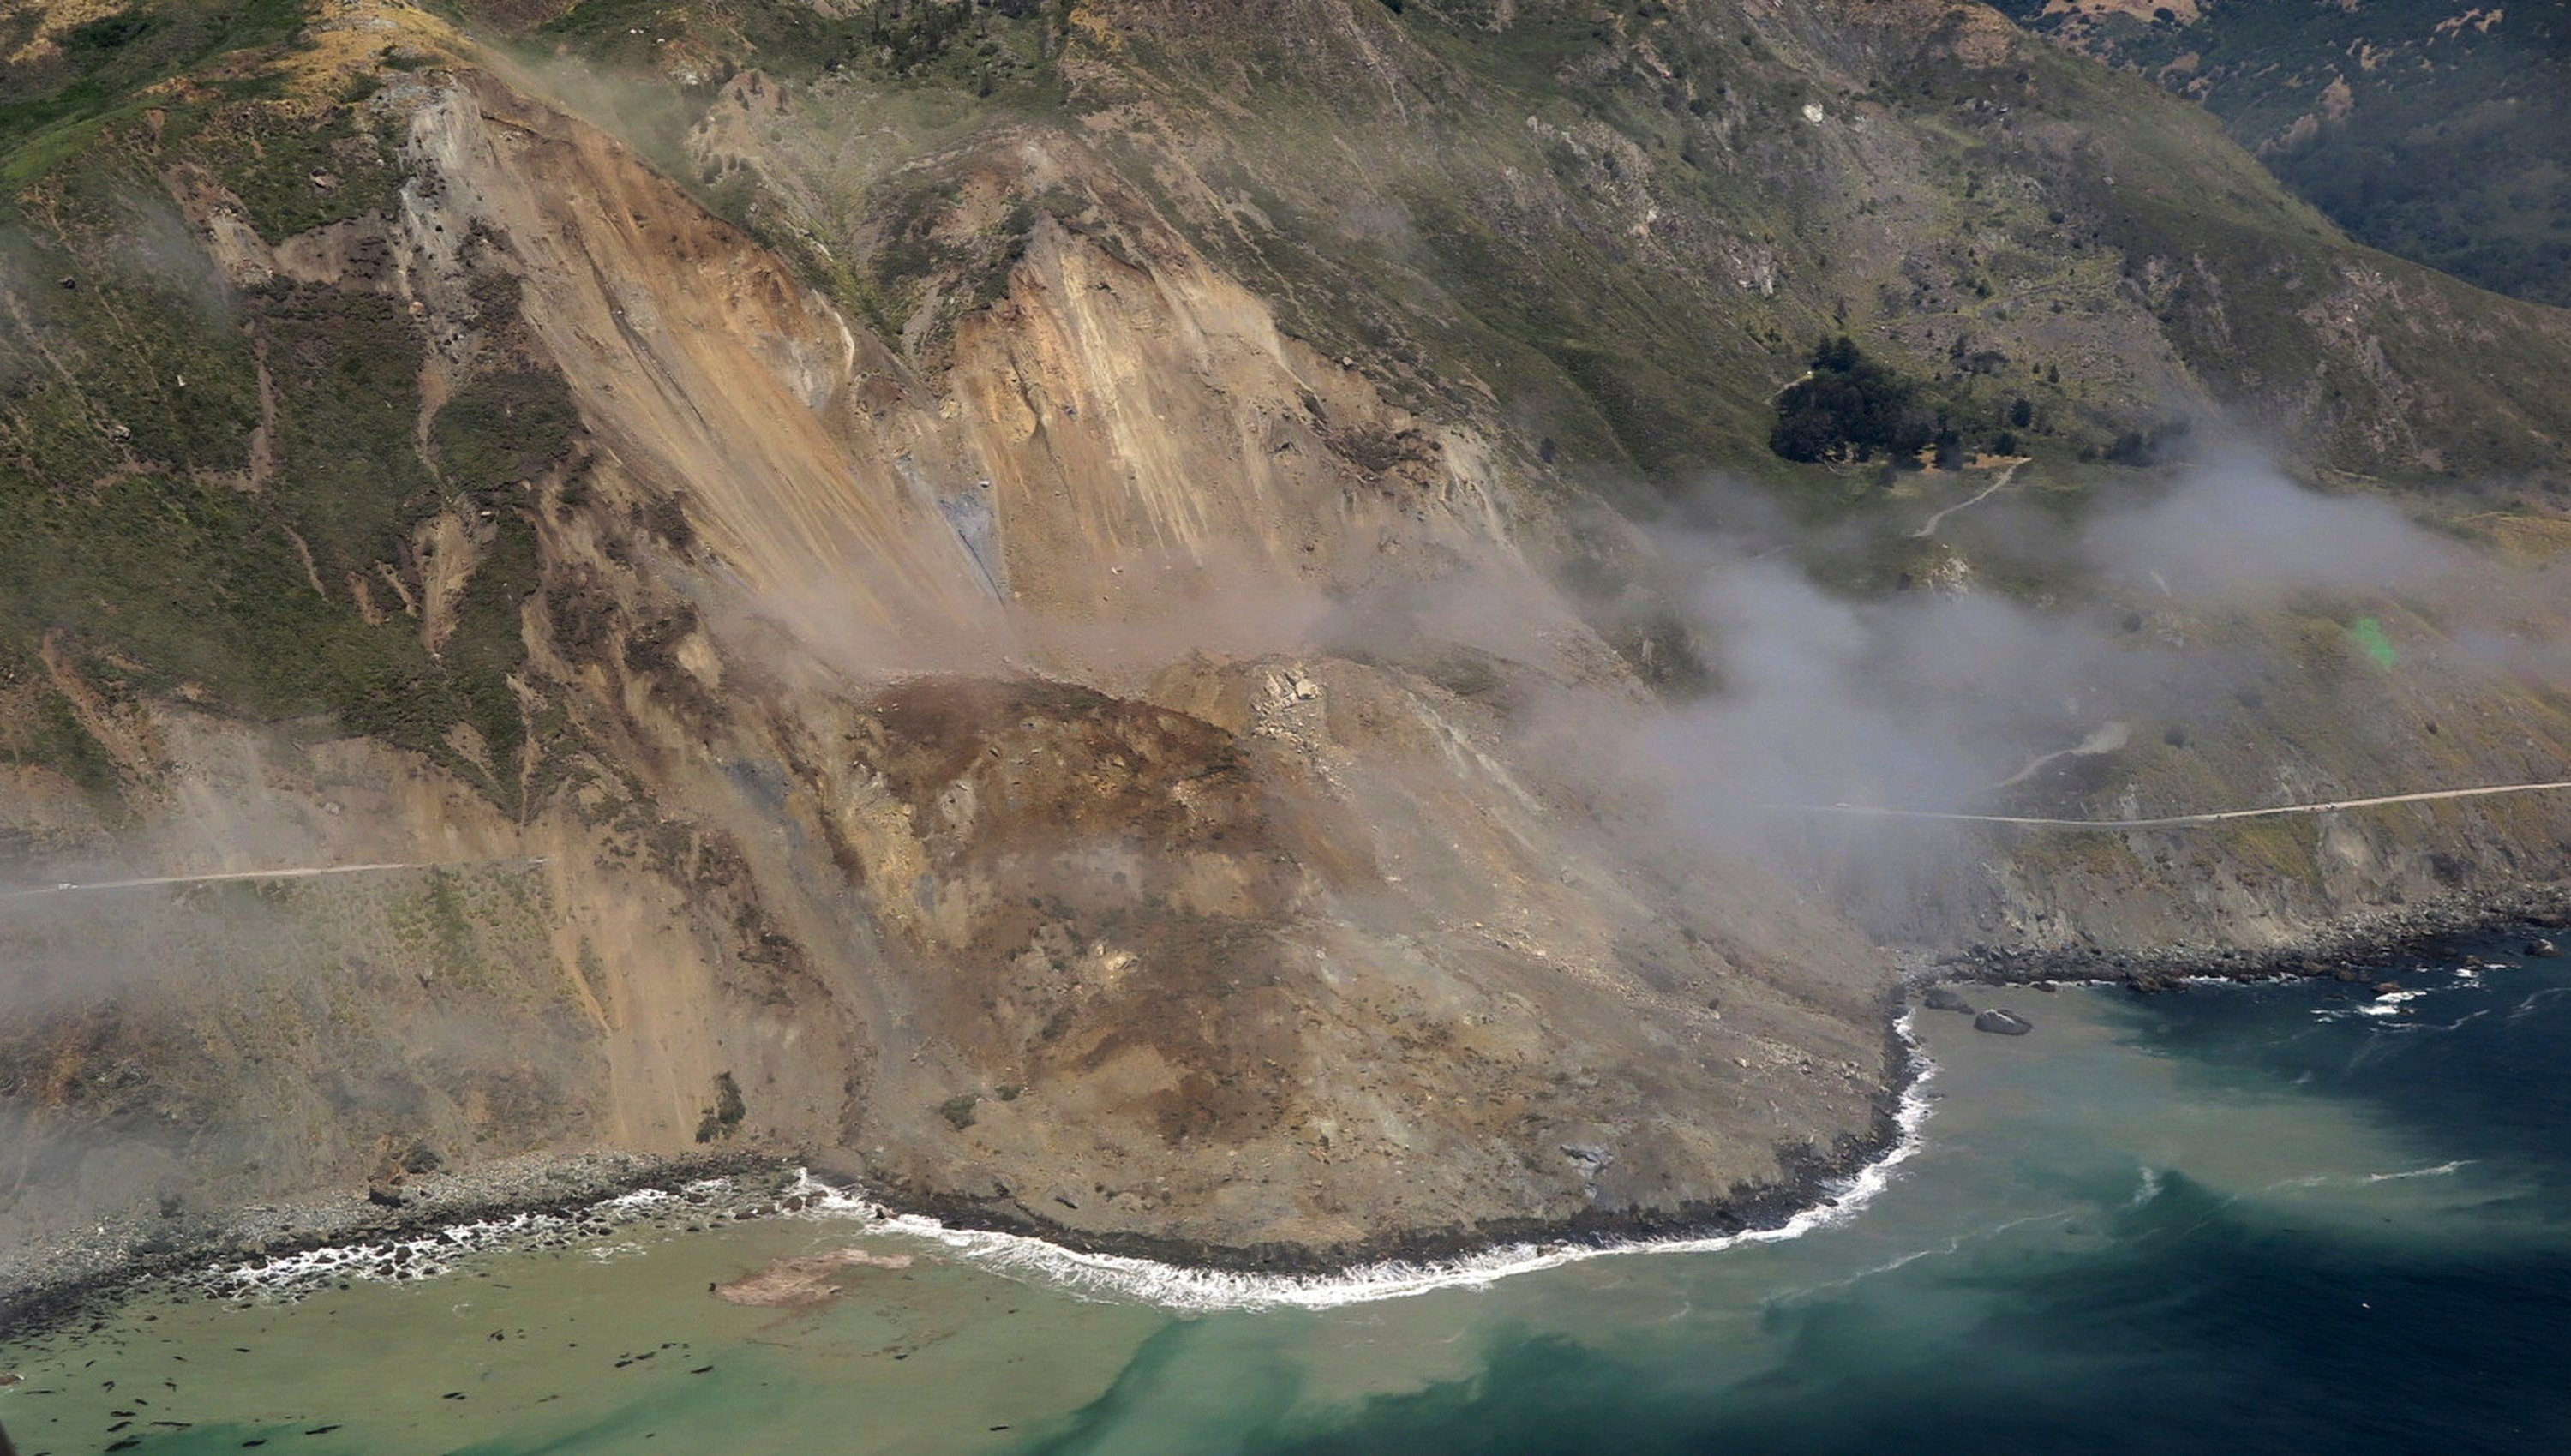 A swath of the hillside gave way in an area called Mud Creek on Saturday, May 20, covering about one-third of a mile, half a kilometer, of road and changing the Big Sur coastline. (John Madonna via AP)